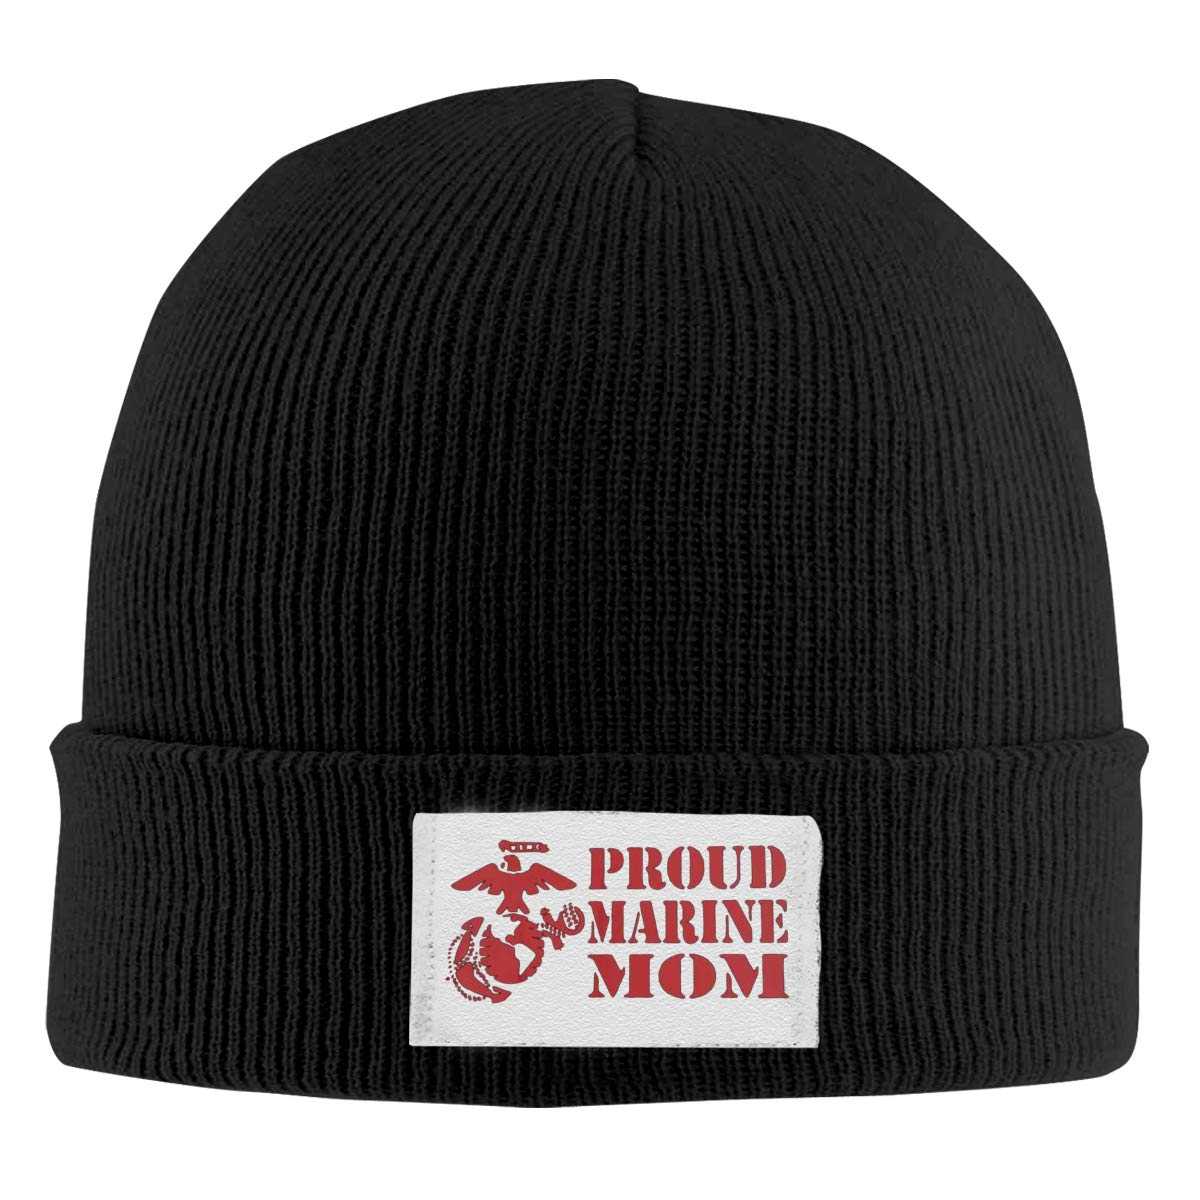 Dunpaiaa Skull Caps US Marine Corps Proud Mom Winter Warm Knit Hats Stretchy Cuff Beanie Hat Black